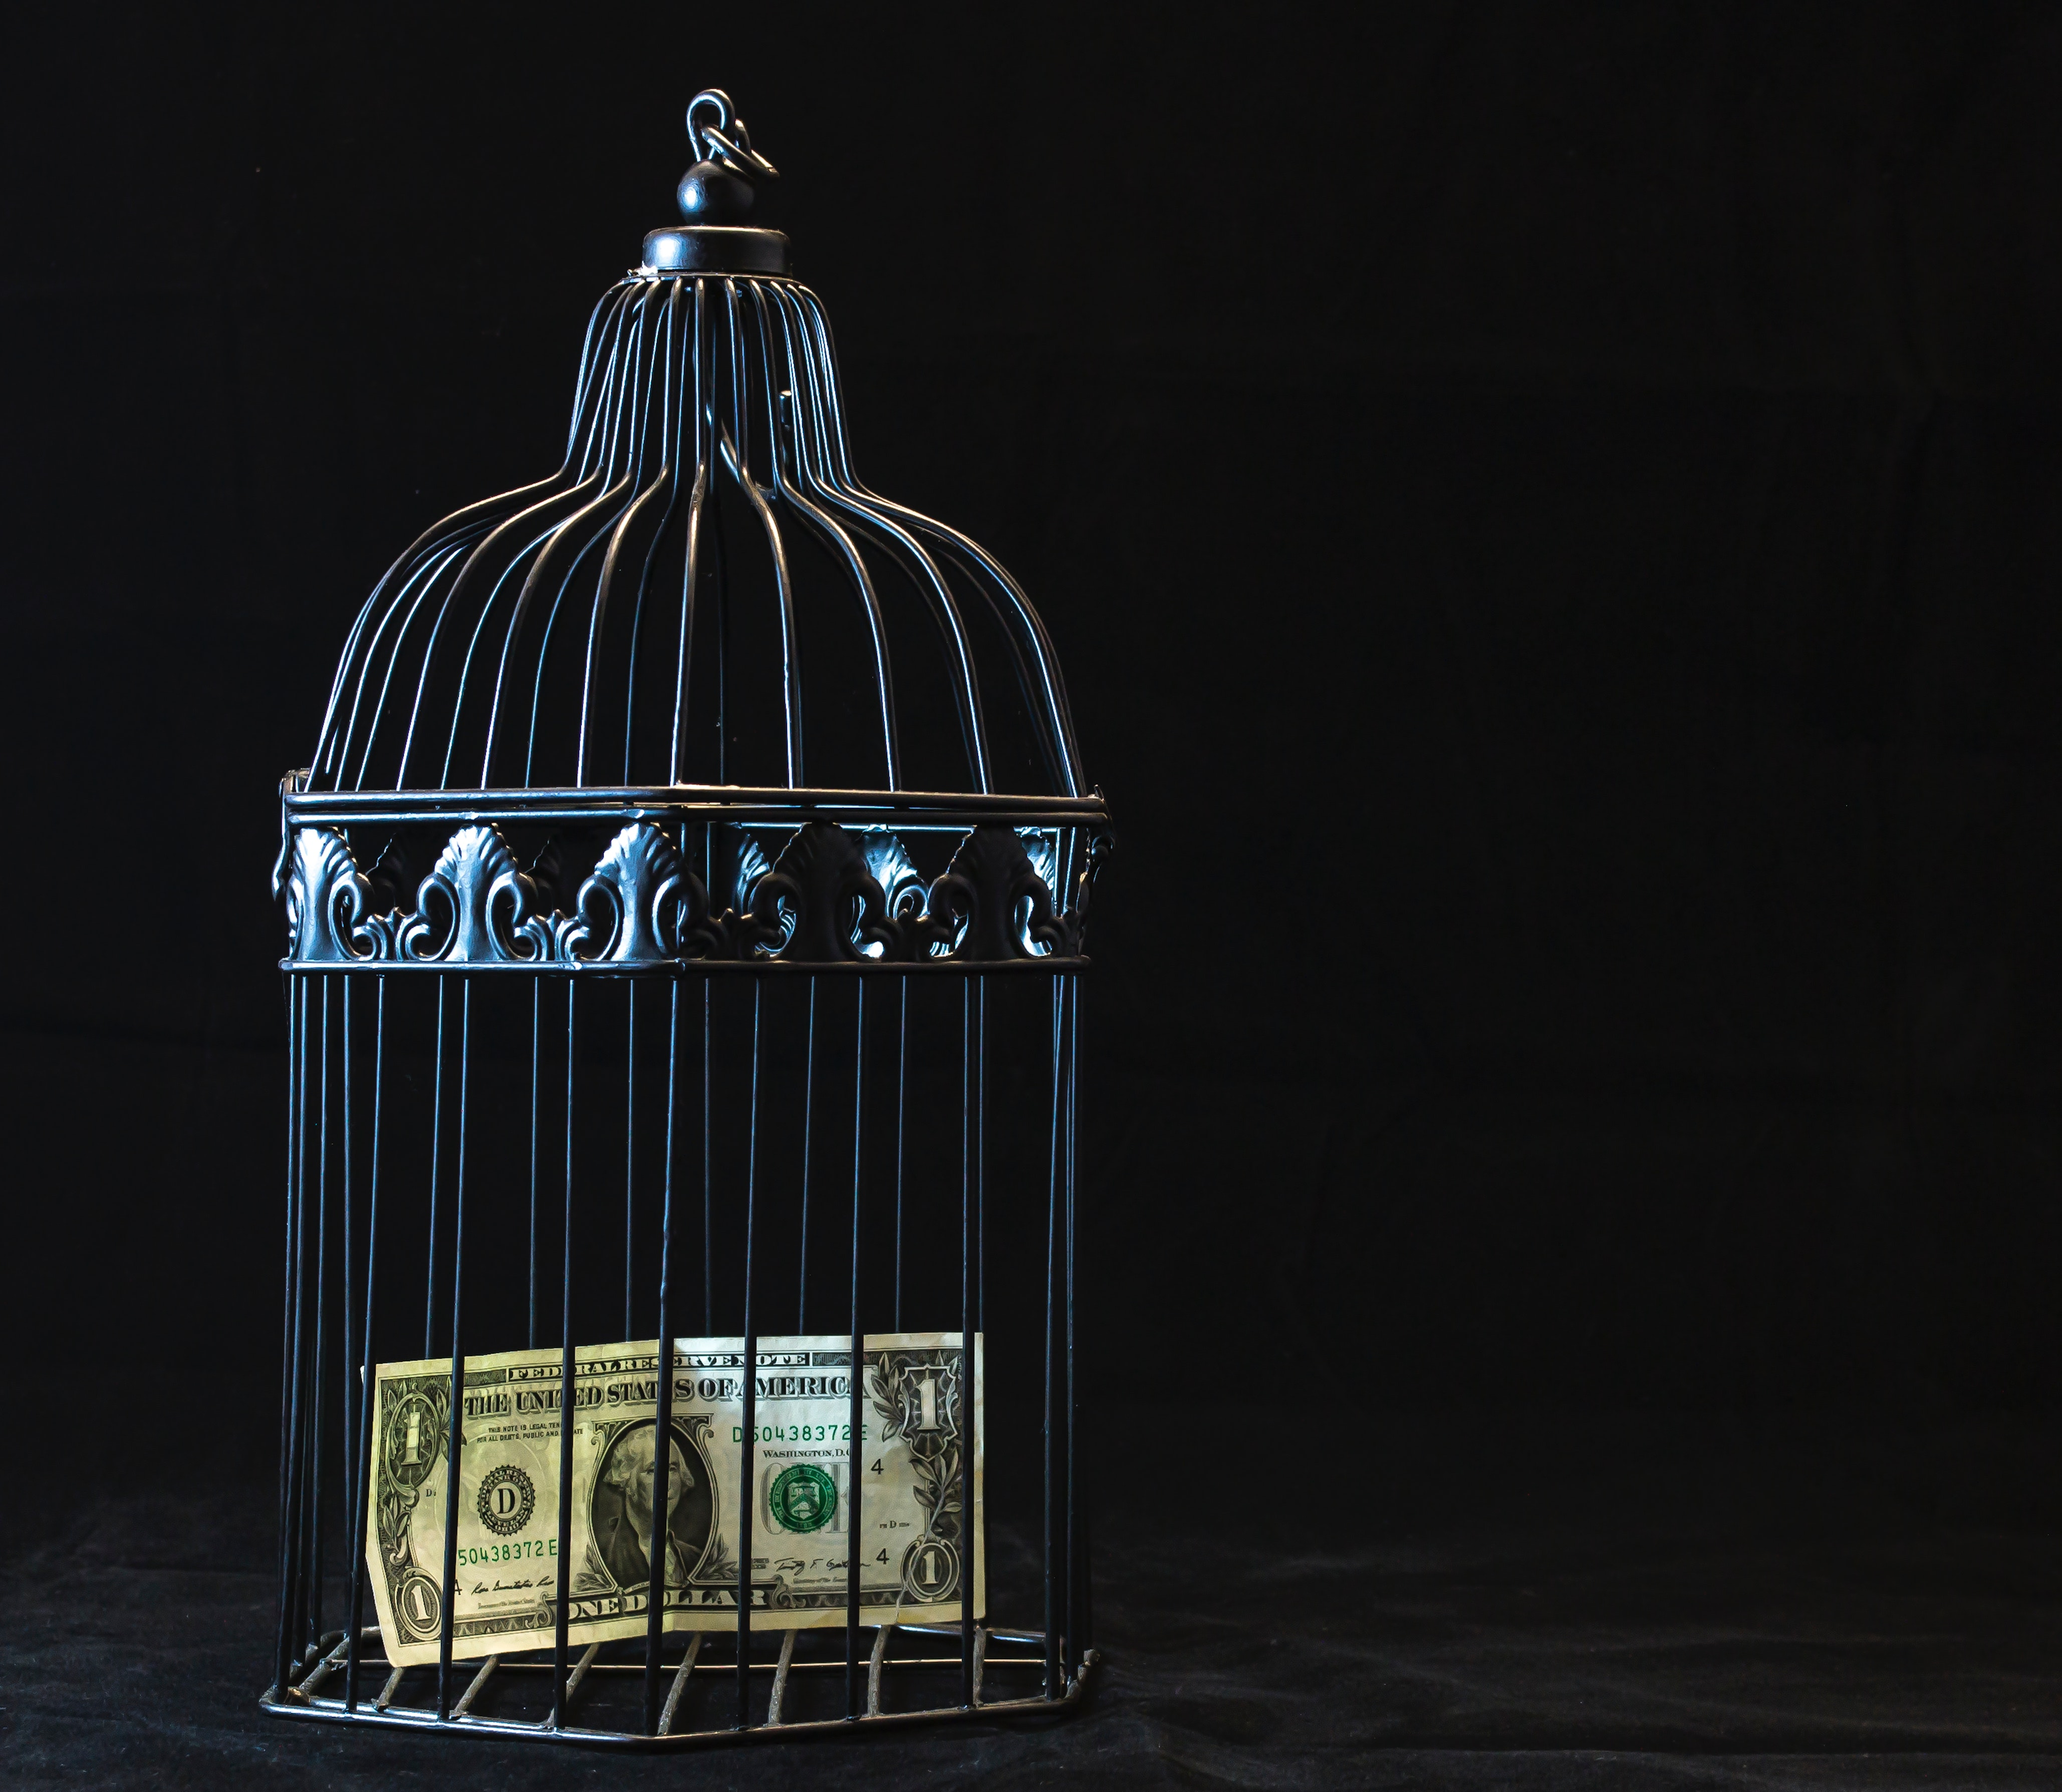 Black steel pet cage with one dollar photo